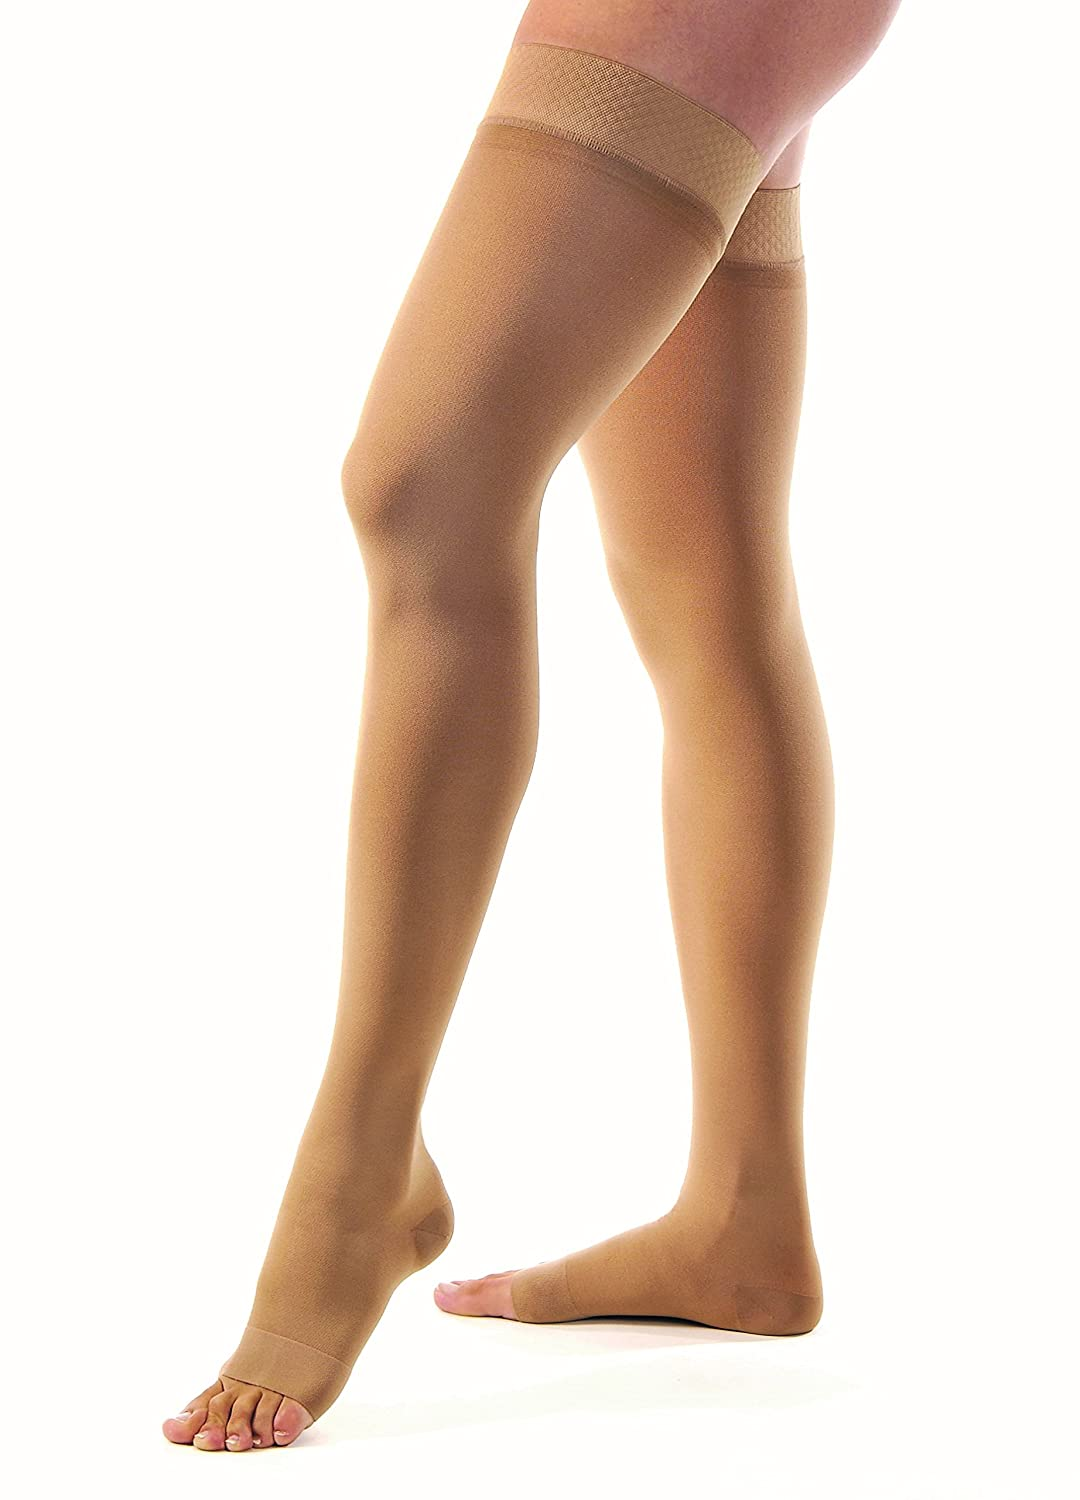 233425dce2 Amazon.com: JOBST Relief 30-40 mmHg Compression Stockings, Thigh High with  Silicone Band, Open Toe, Beige, Medium: Health & Personal Care